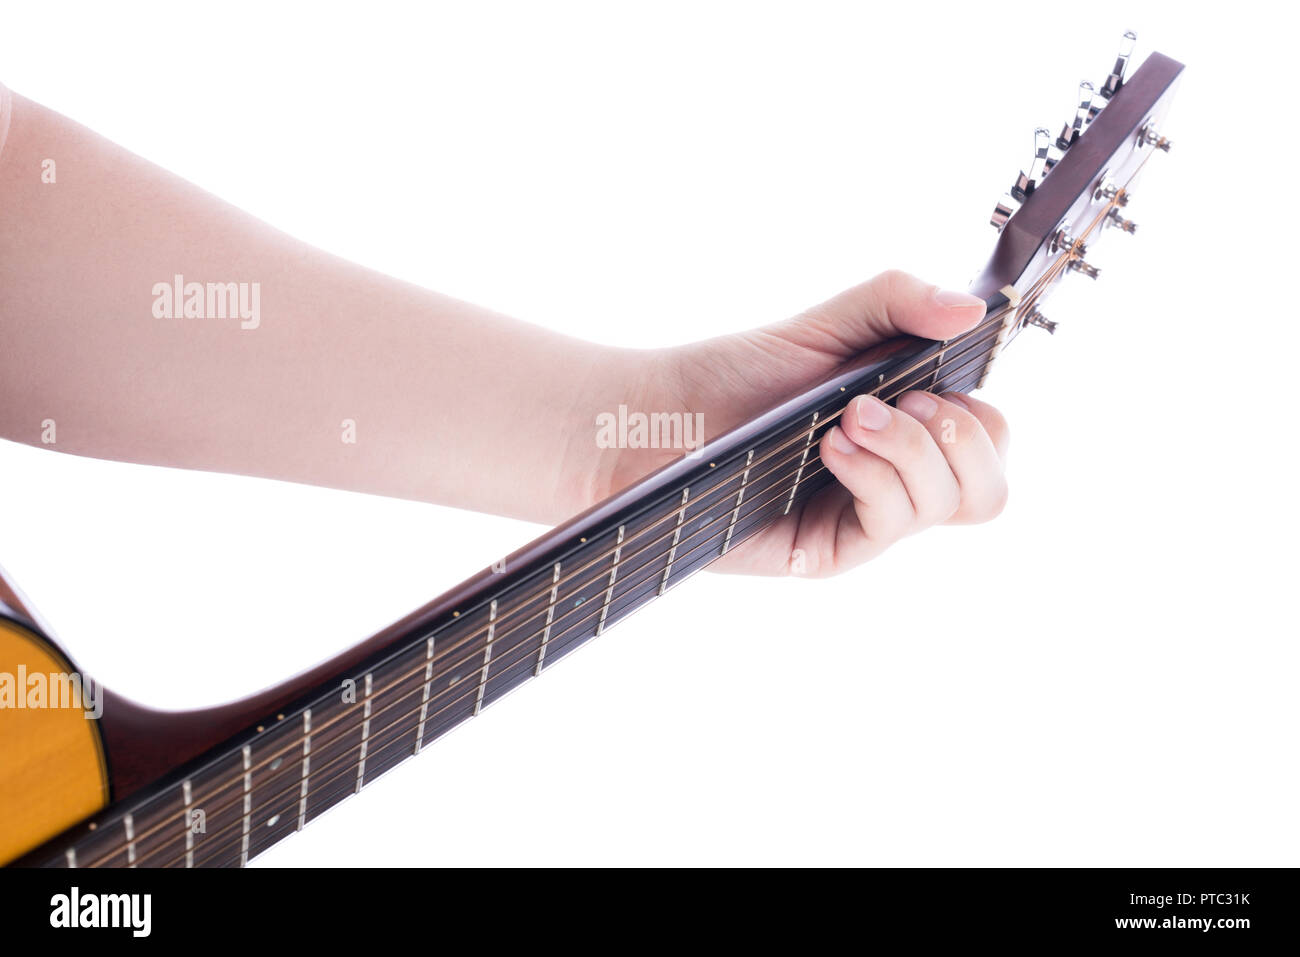 The Position Of The Left Male Hand On The Guitar Neck Chord C